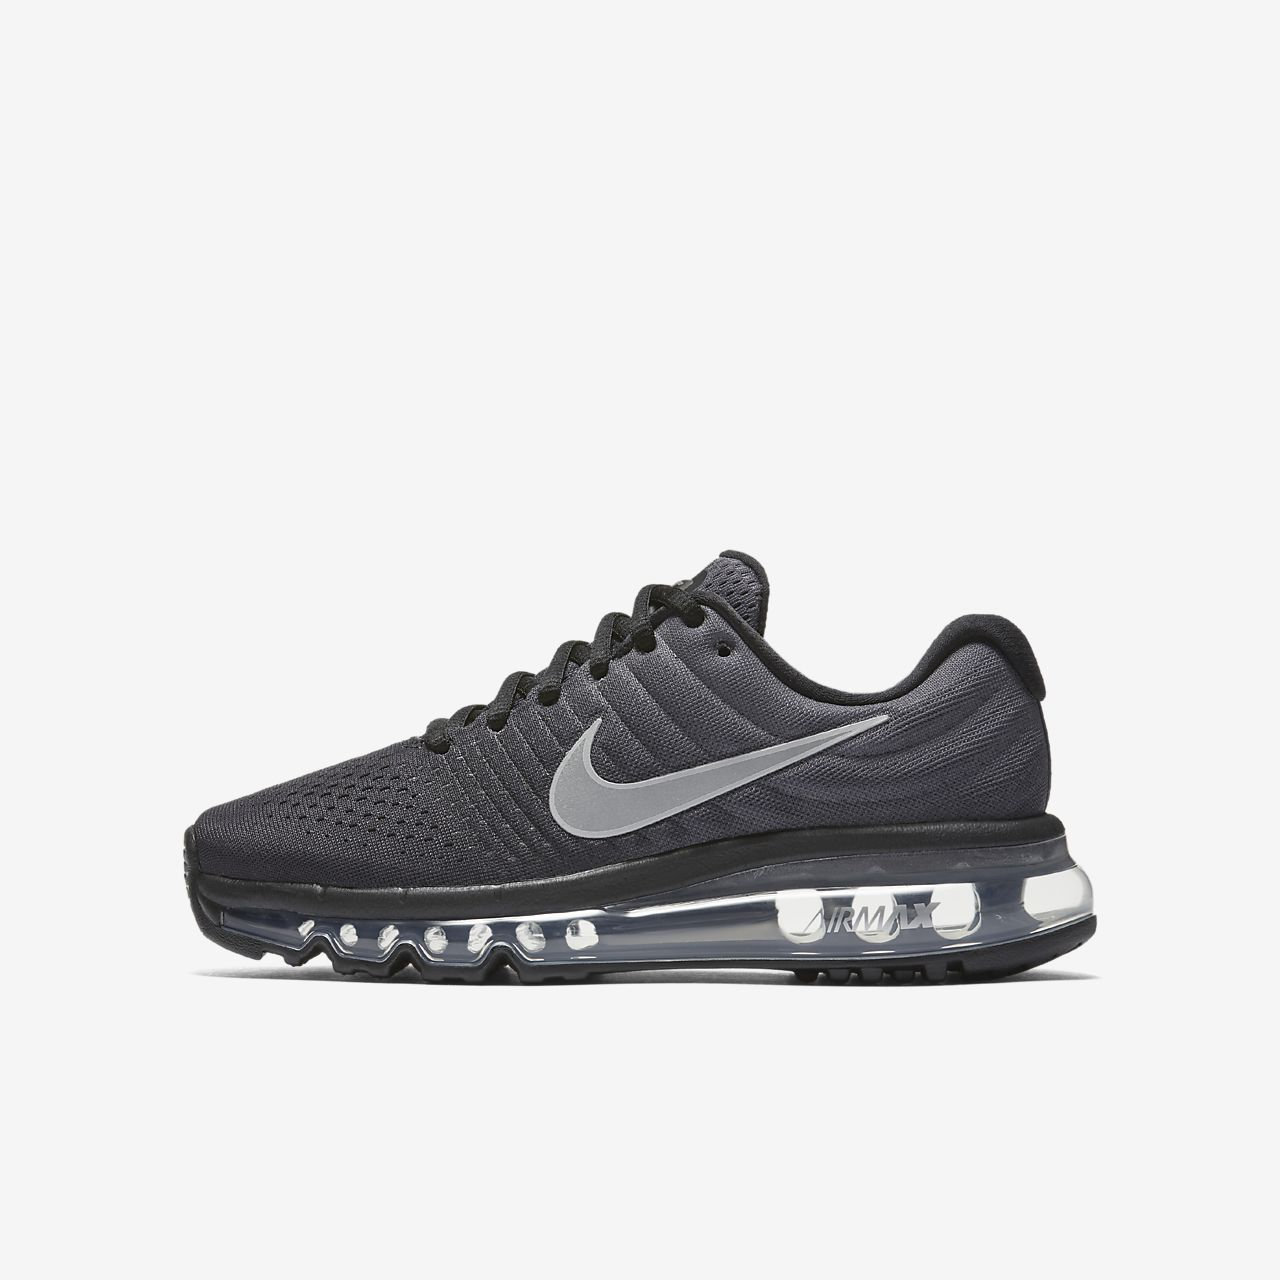 Calzature & Accessori 47,5 neri per uomo Nike Air Max